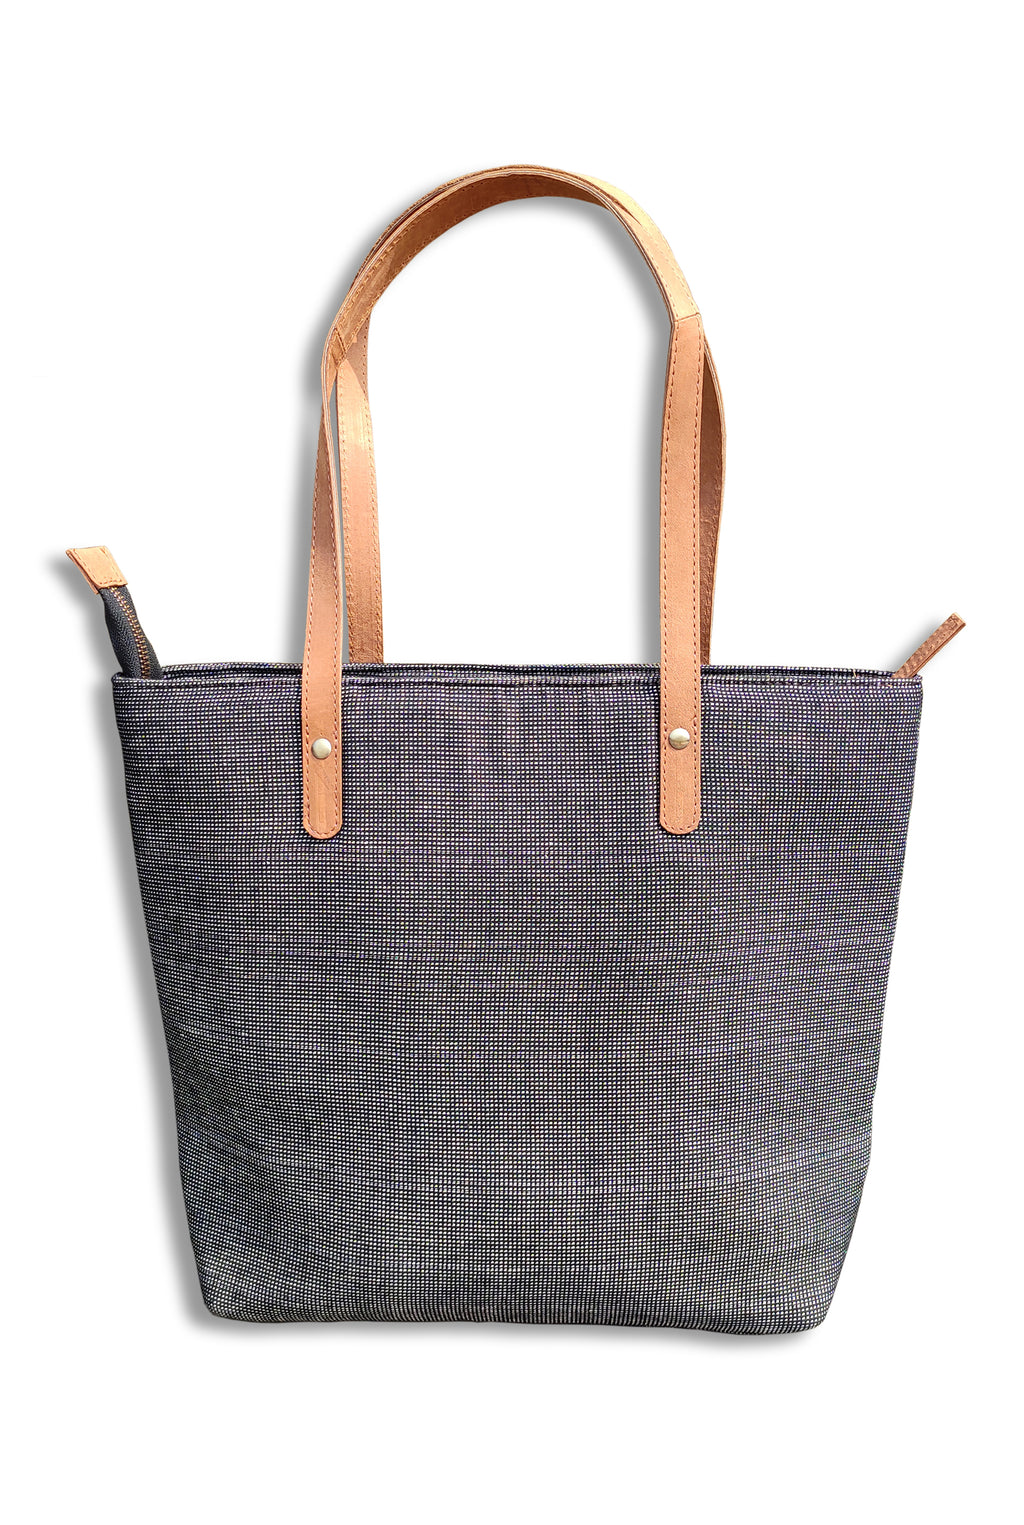 Cotton Black Tote Bag with Leather Handle